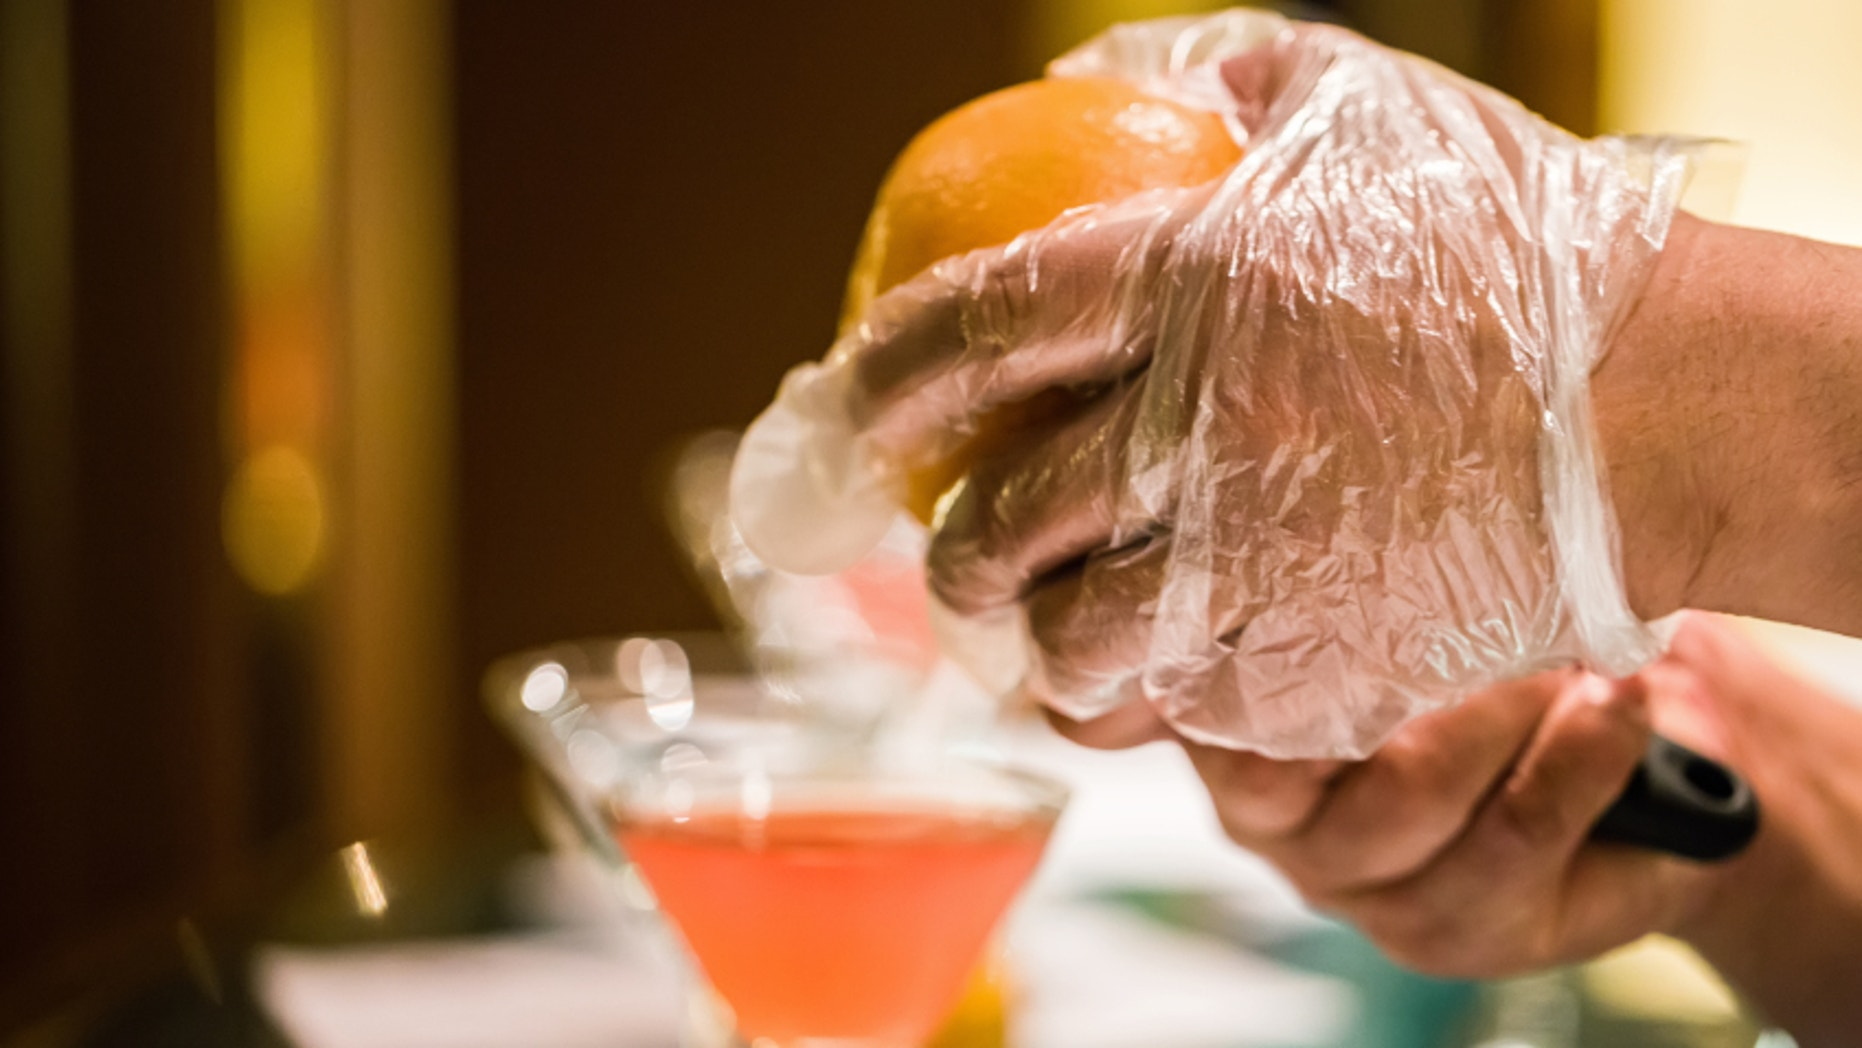 California bartenders have been told they must wear gloves when making drinks from now on, thanks to the introduction of a new food safety law.